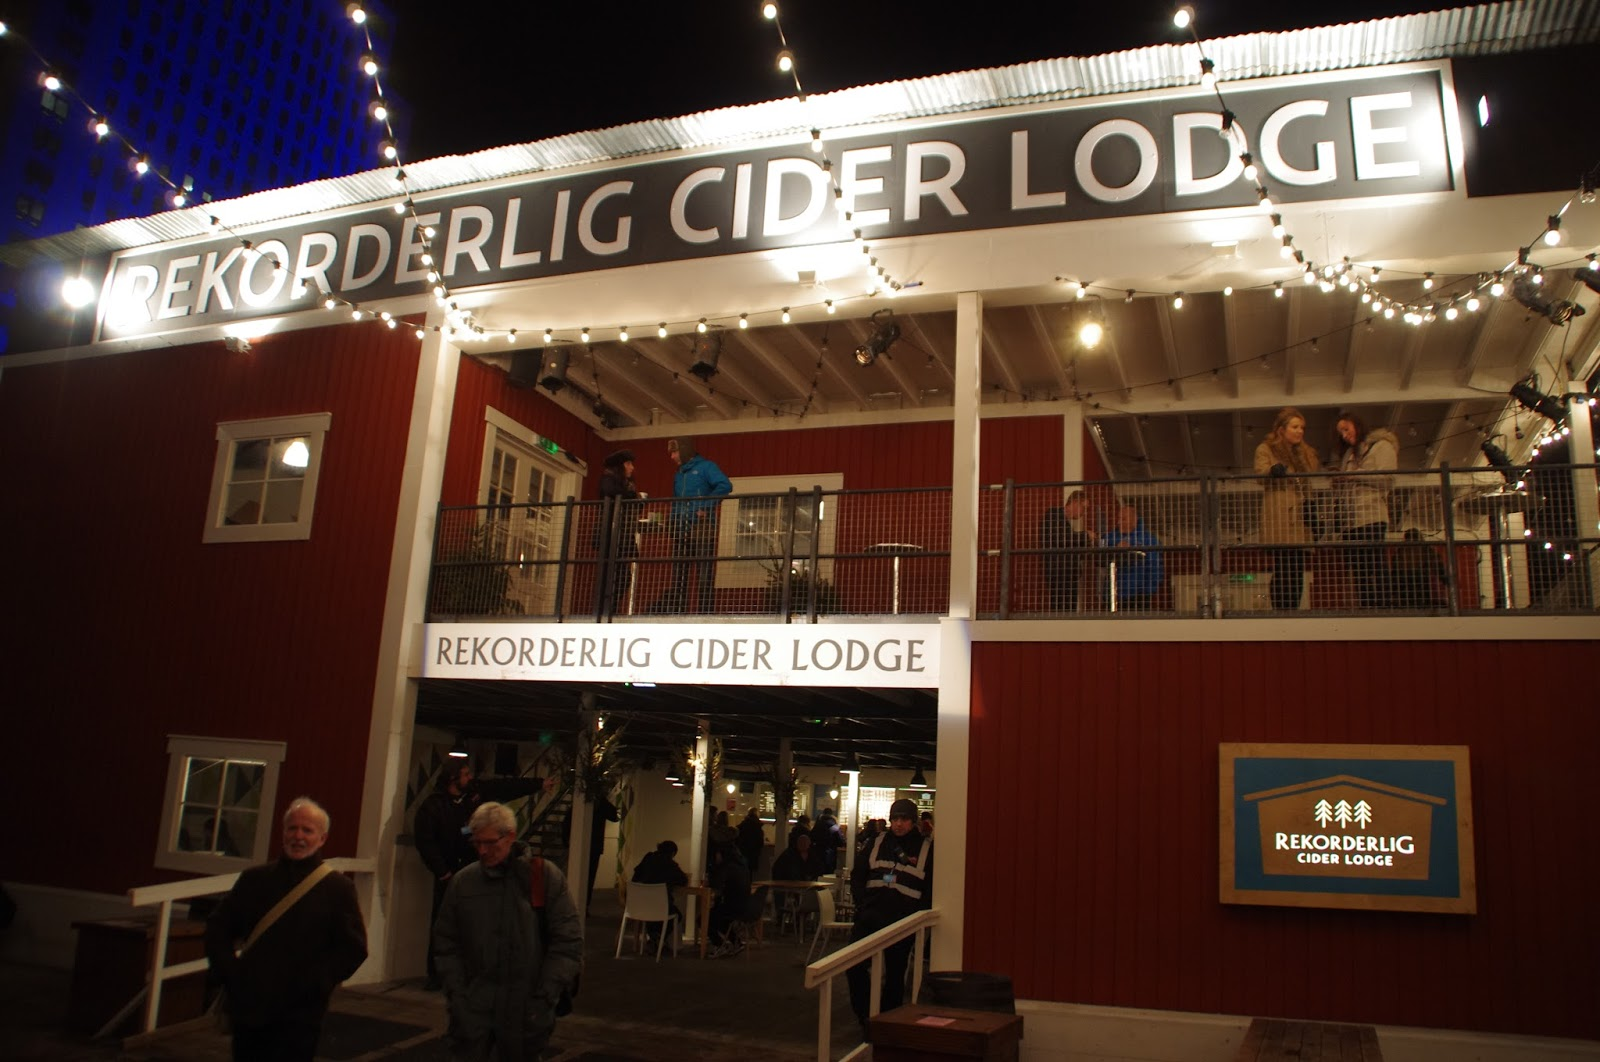 Rekorderlig Cider Lounge Southbank London